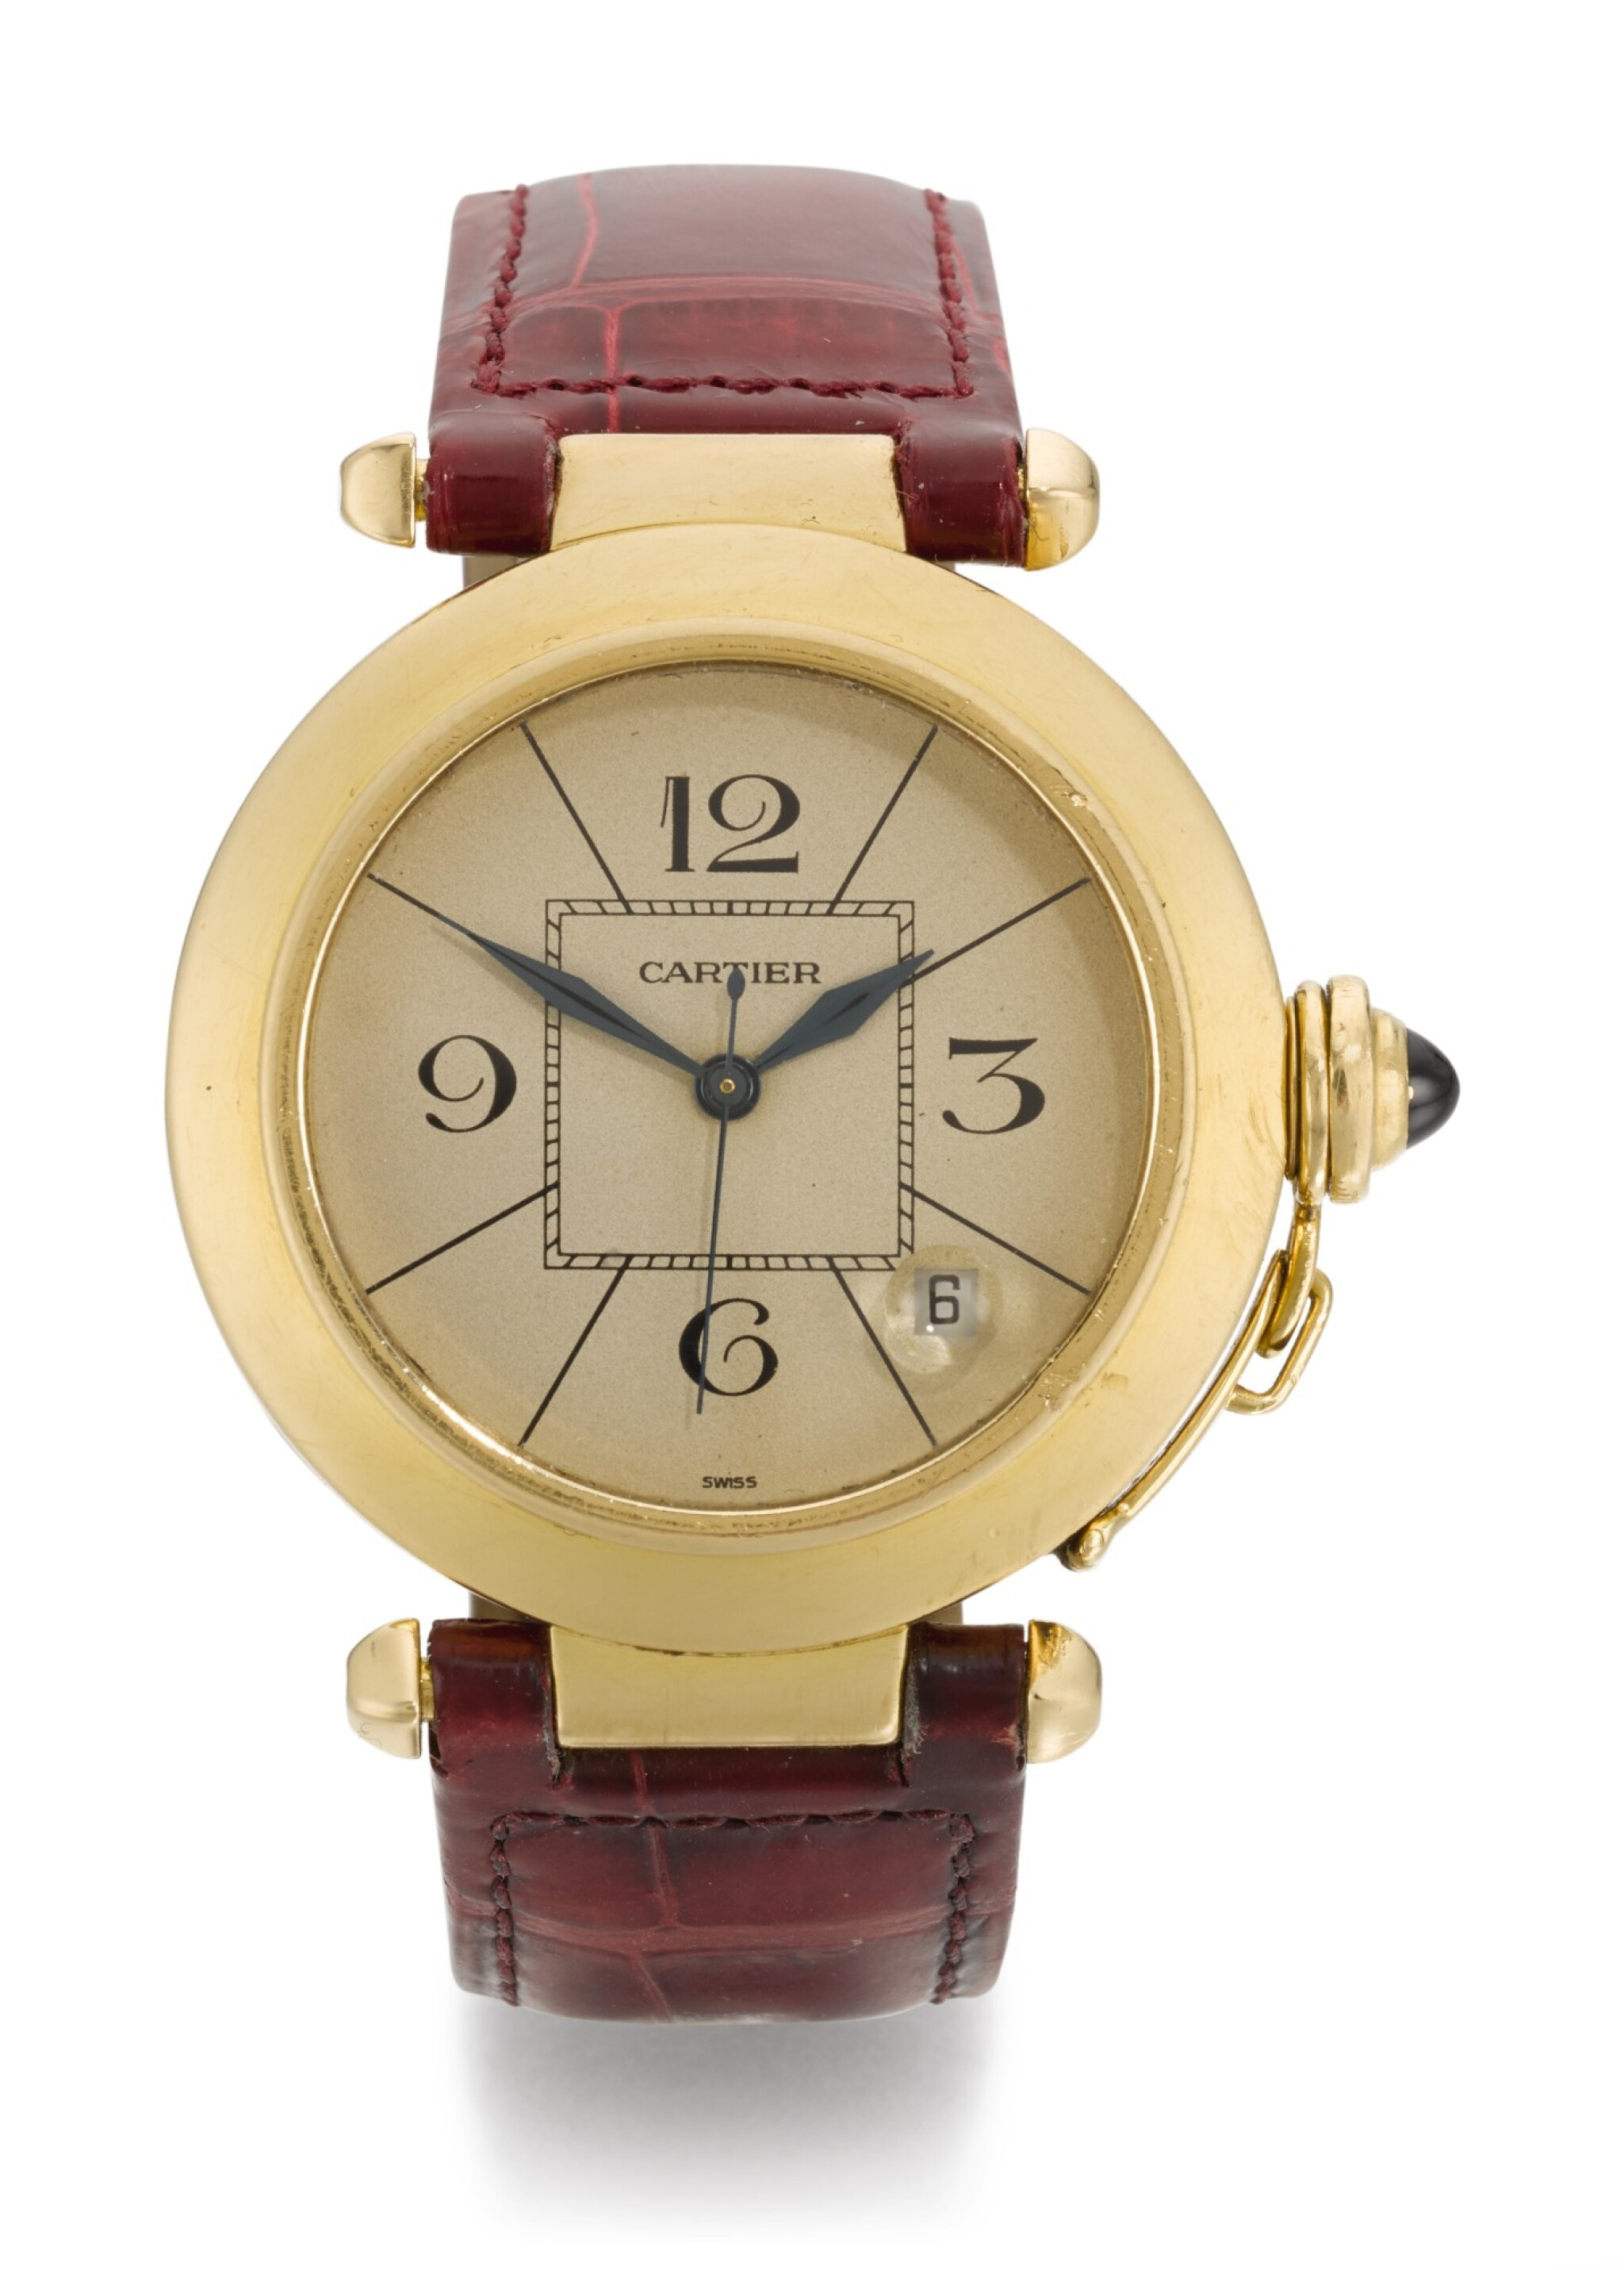 CARTIER | PASHA, REFERENCE 1988 820901, YELLOW GOLD WRISTWATCH WITH DATE, CIRCA 1989